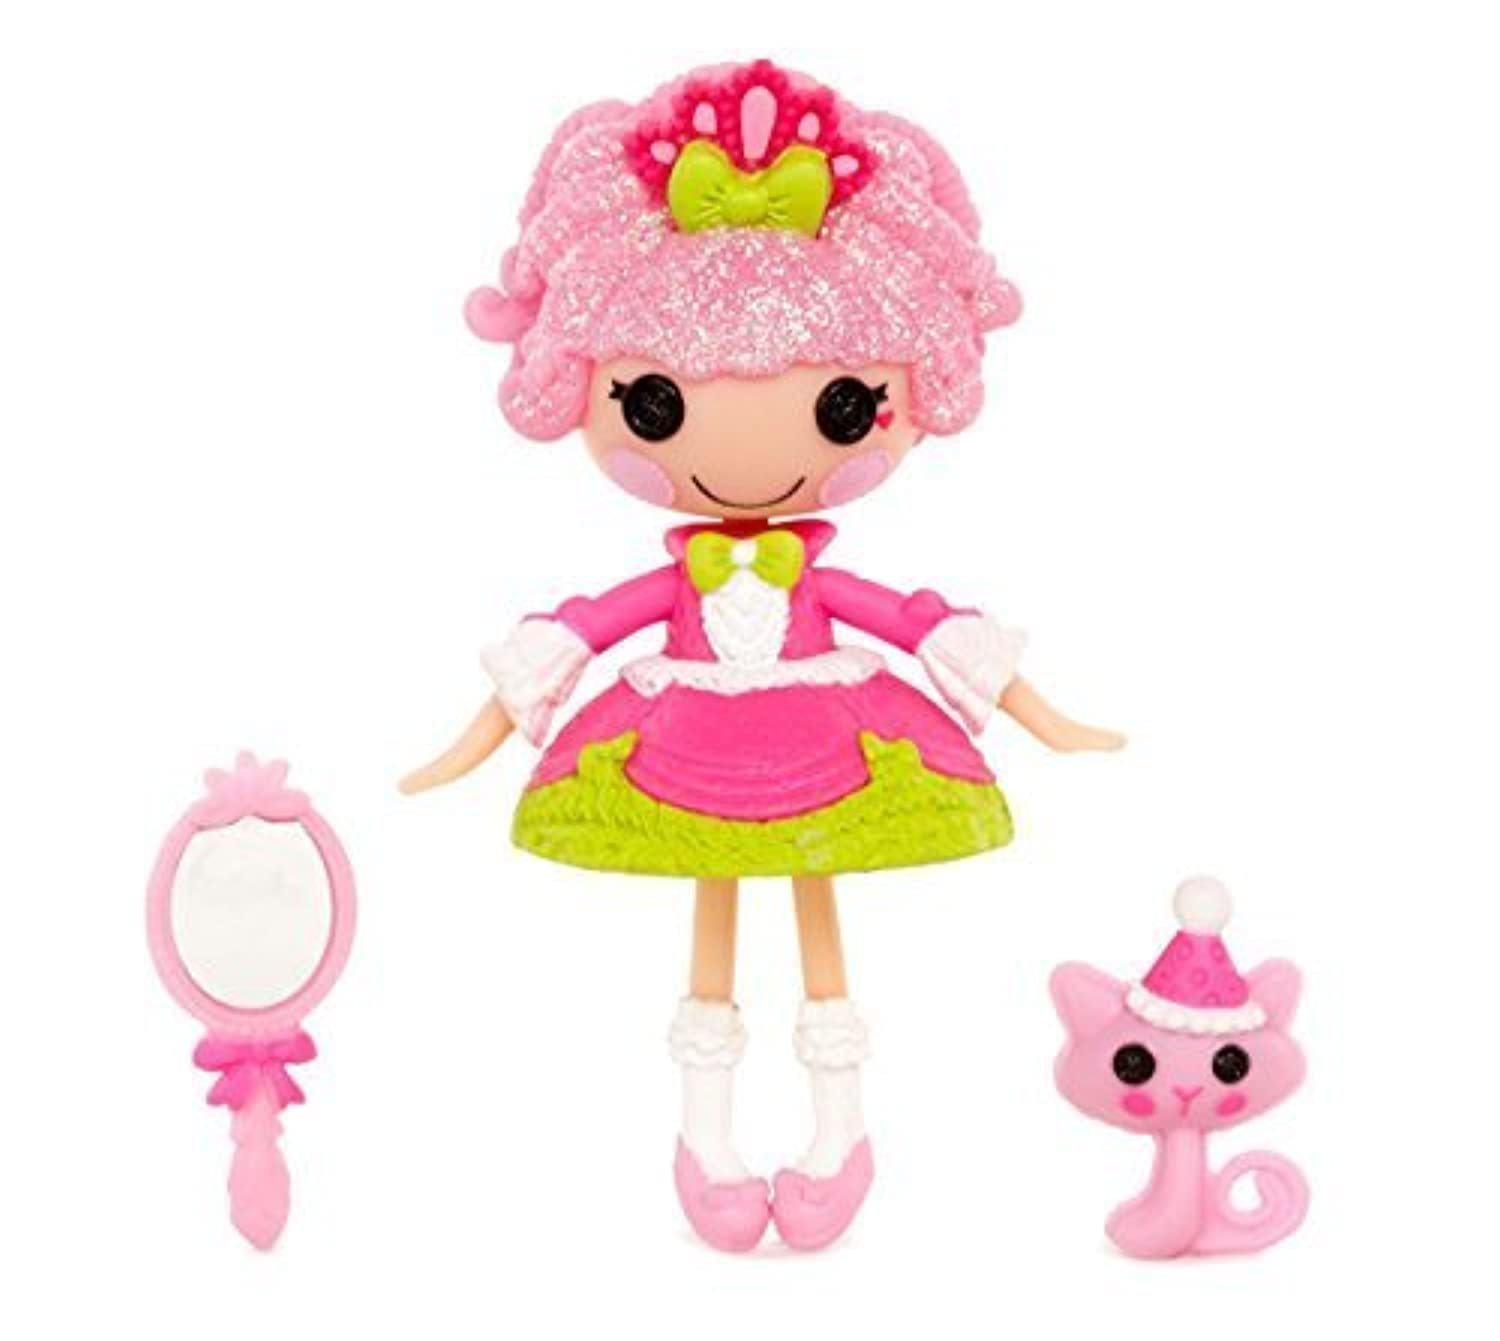 輸入ララループシー人形ドール Mini Lalaloopsy Super Silly Party Doll- Jewel Sparkles [並行輸入品]